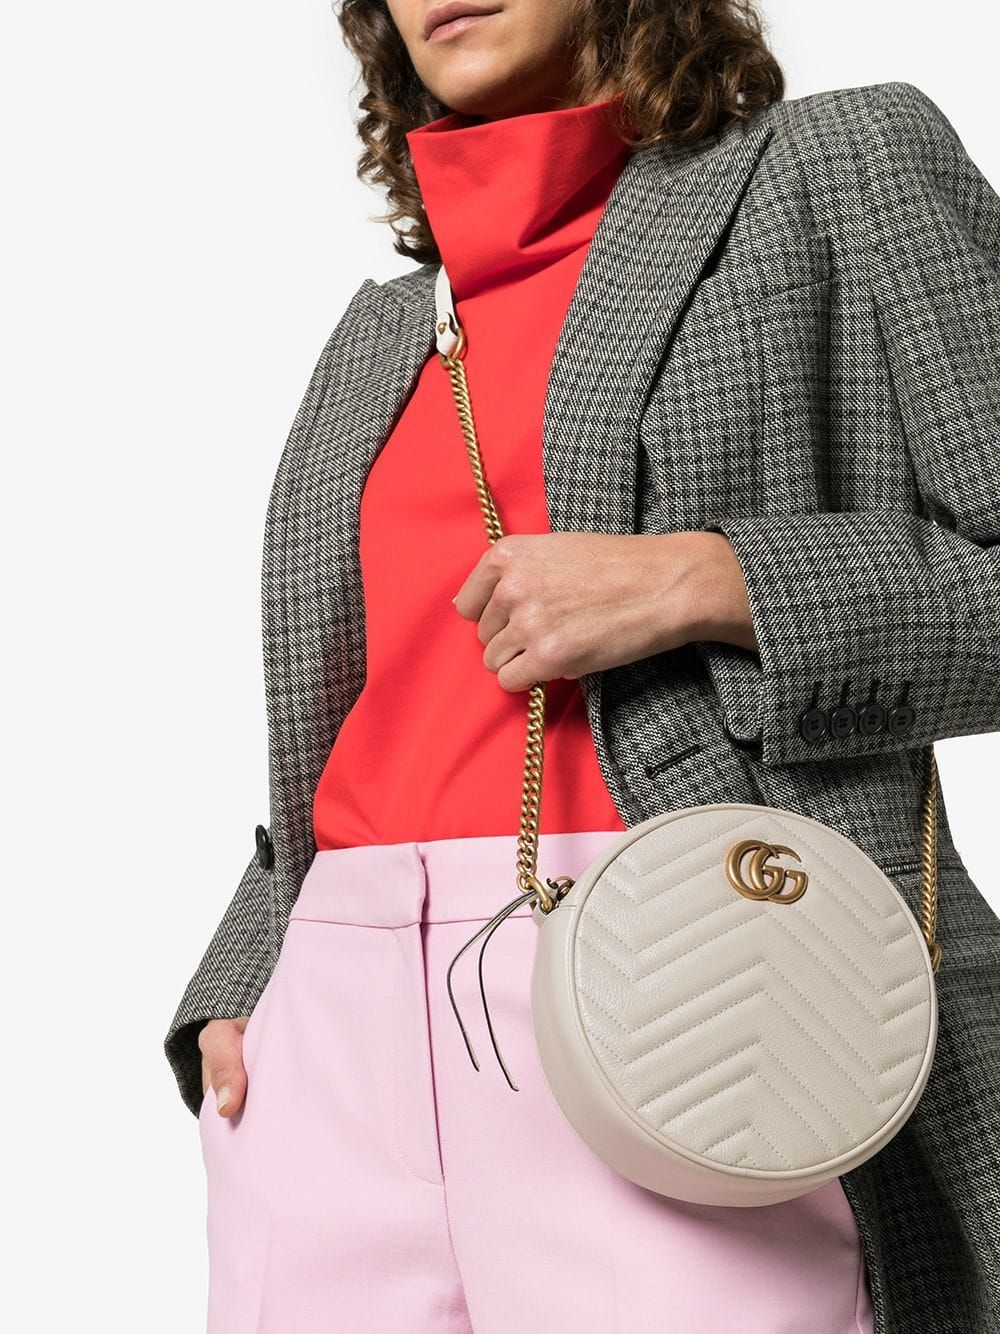 7bbaff147 Gucci | White Marmont Quilted Leather Circle Cross Body Bag - This white  Gucci 'Marmont' circle cross body bag boasts an Italian passport (she's  crafted in ...